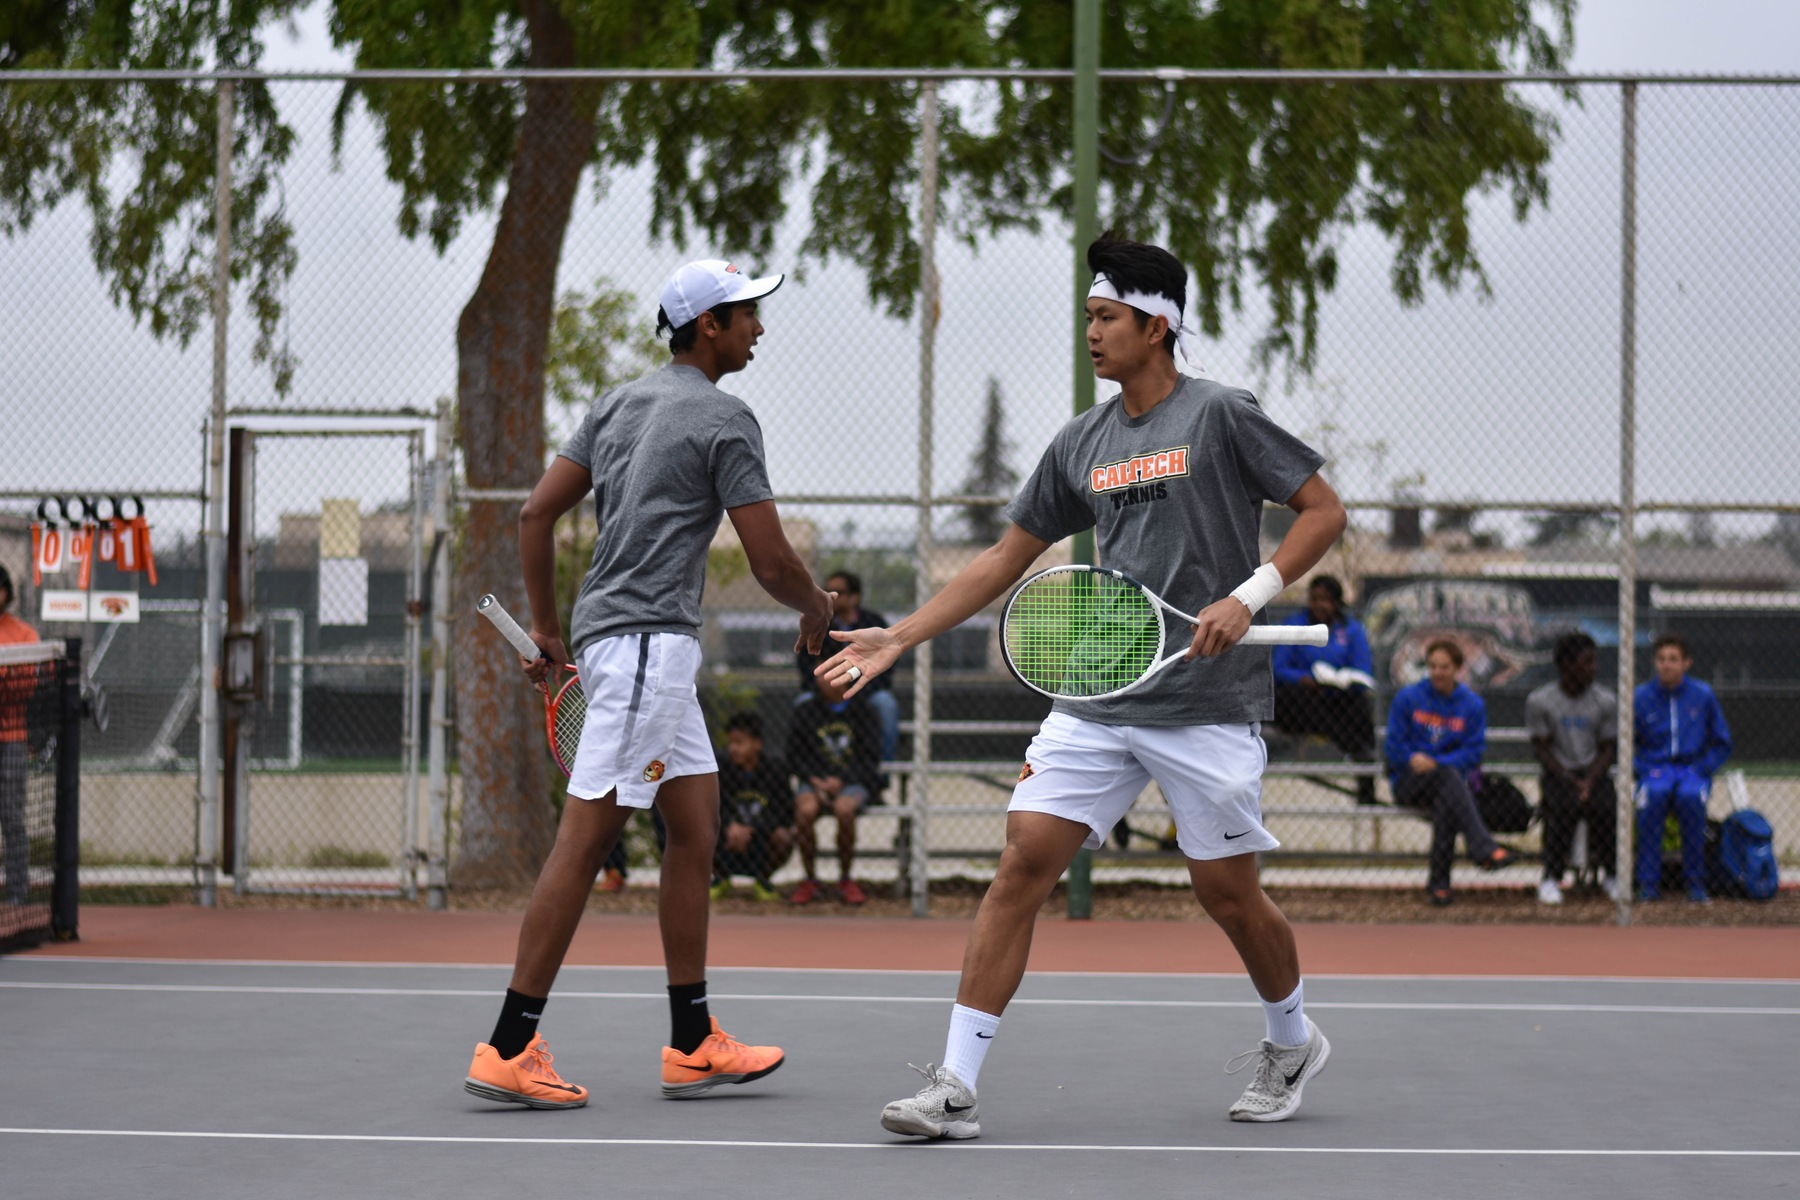 Shanker, Wei Advance to Doubles Finals at ITA Regionals